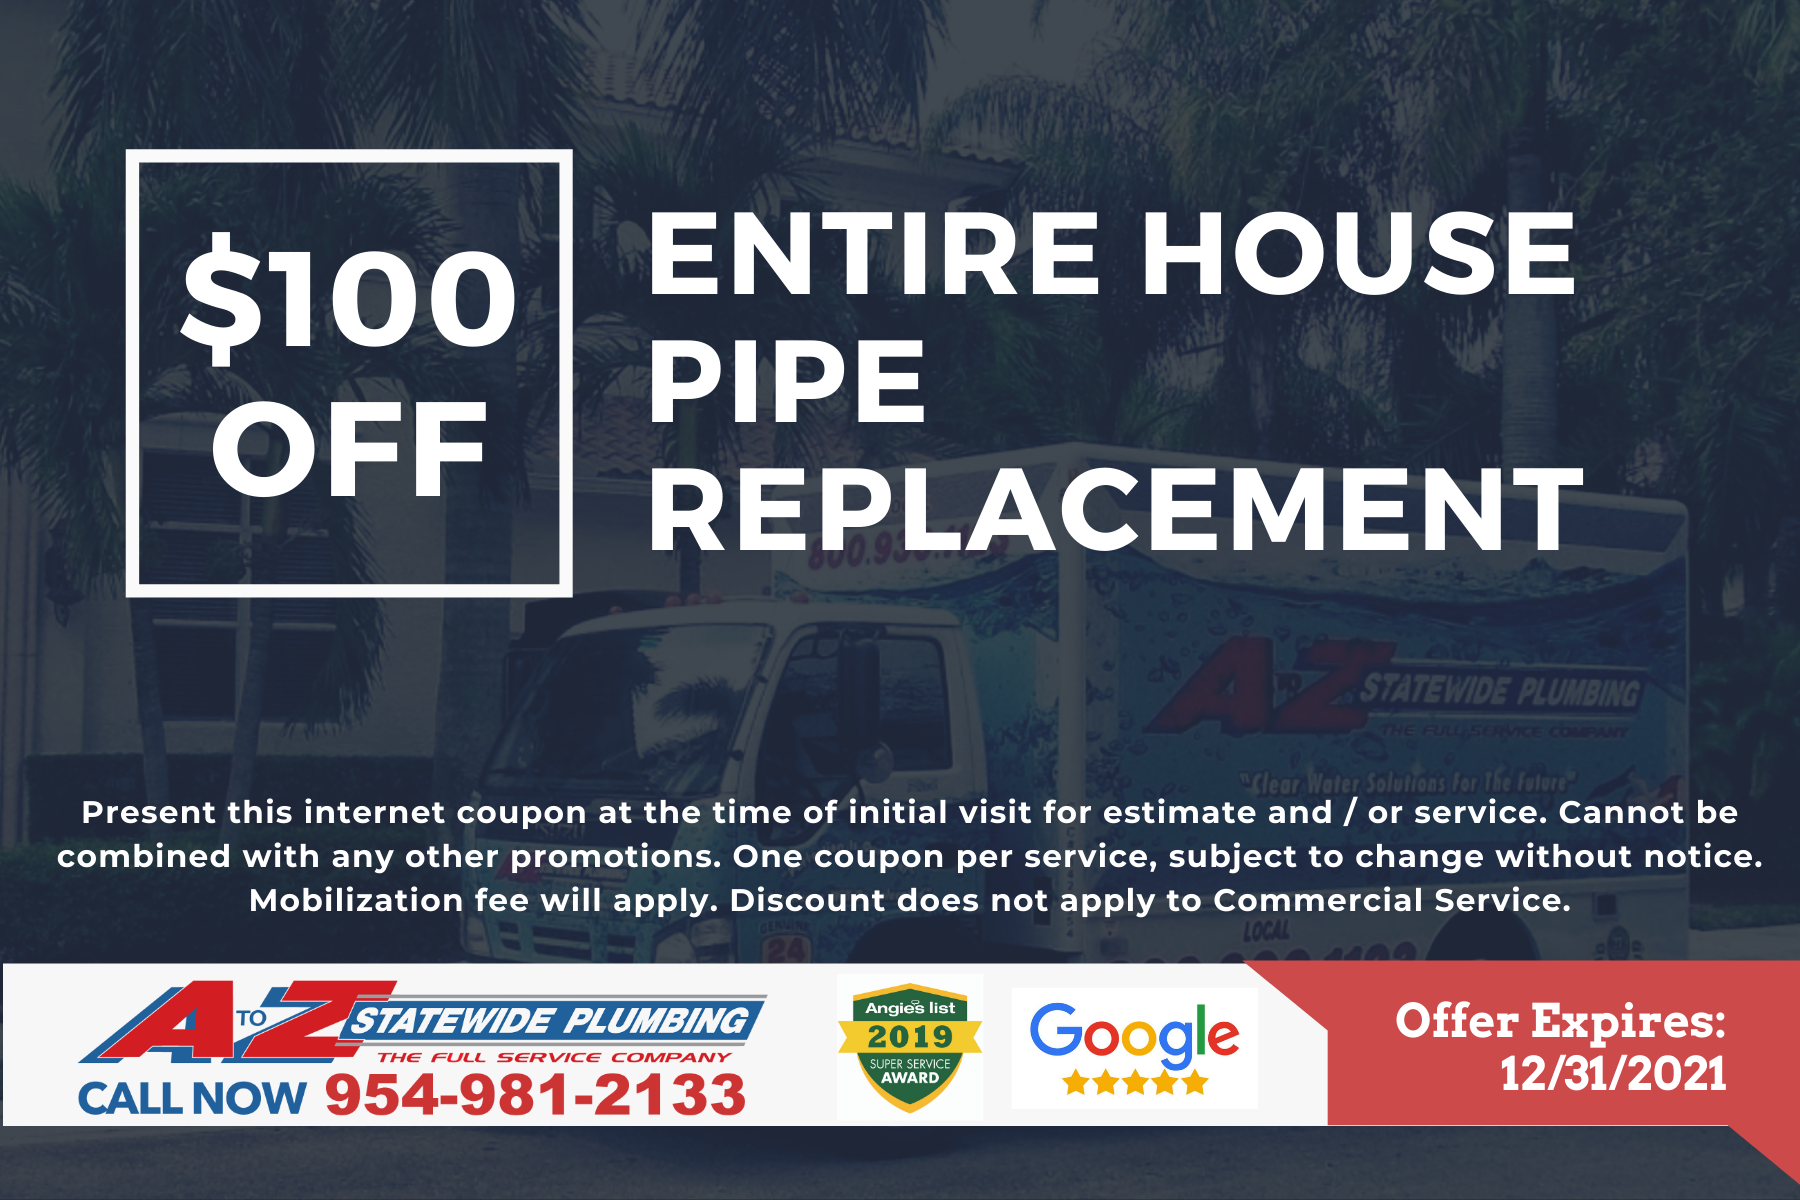 Entire house pipe replacement coupon